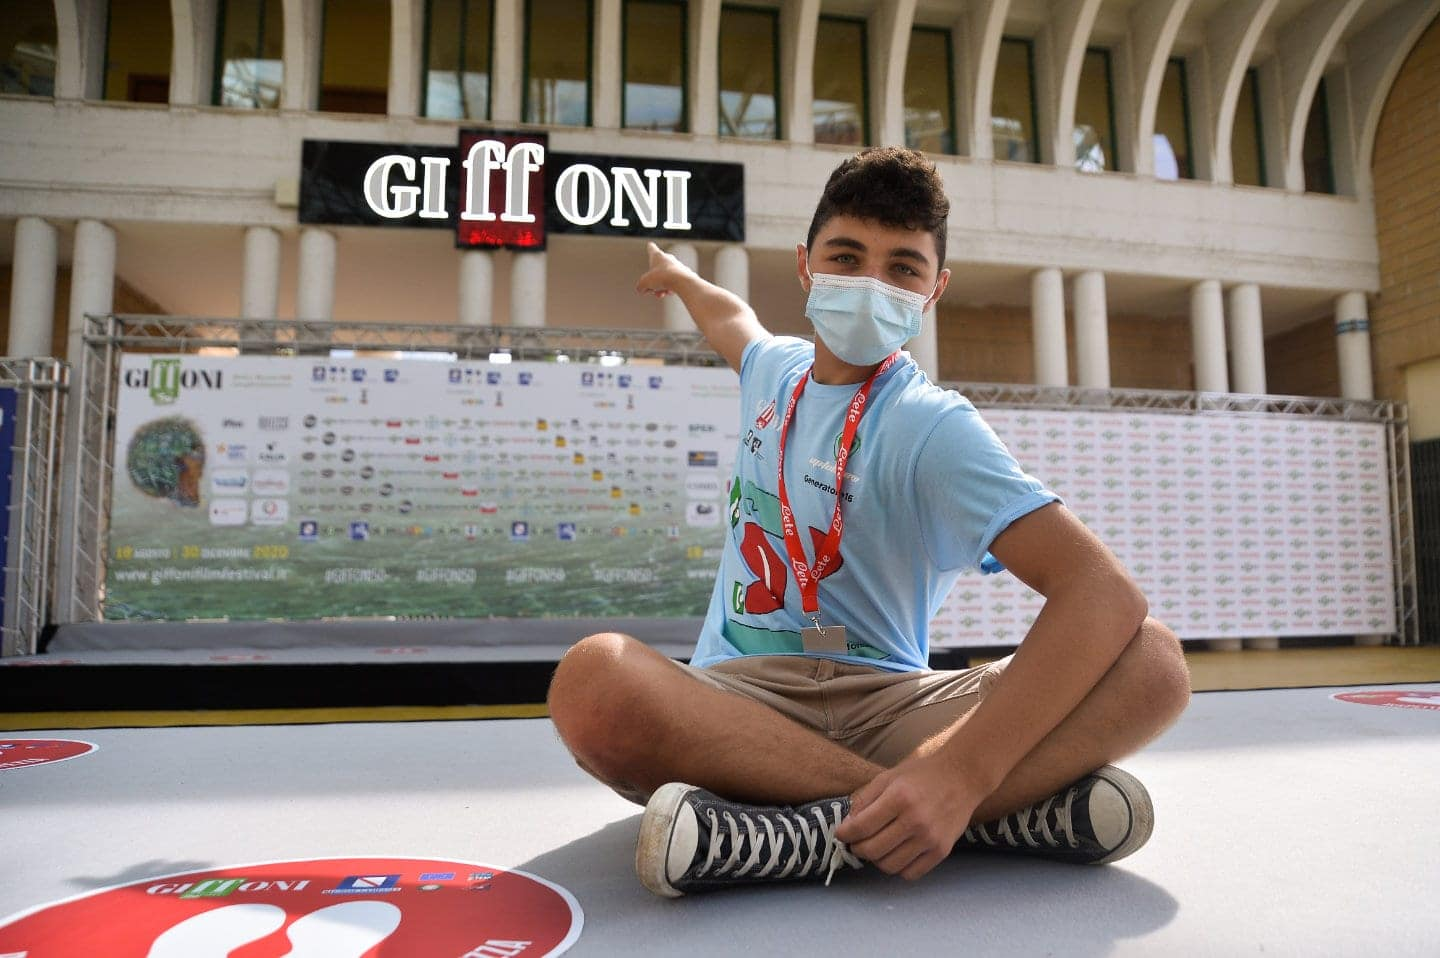 Short Films Festivals That Have No Submission Fees - Giffoni Film Festival - Indie Shorts Mag